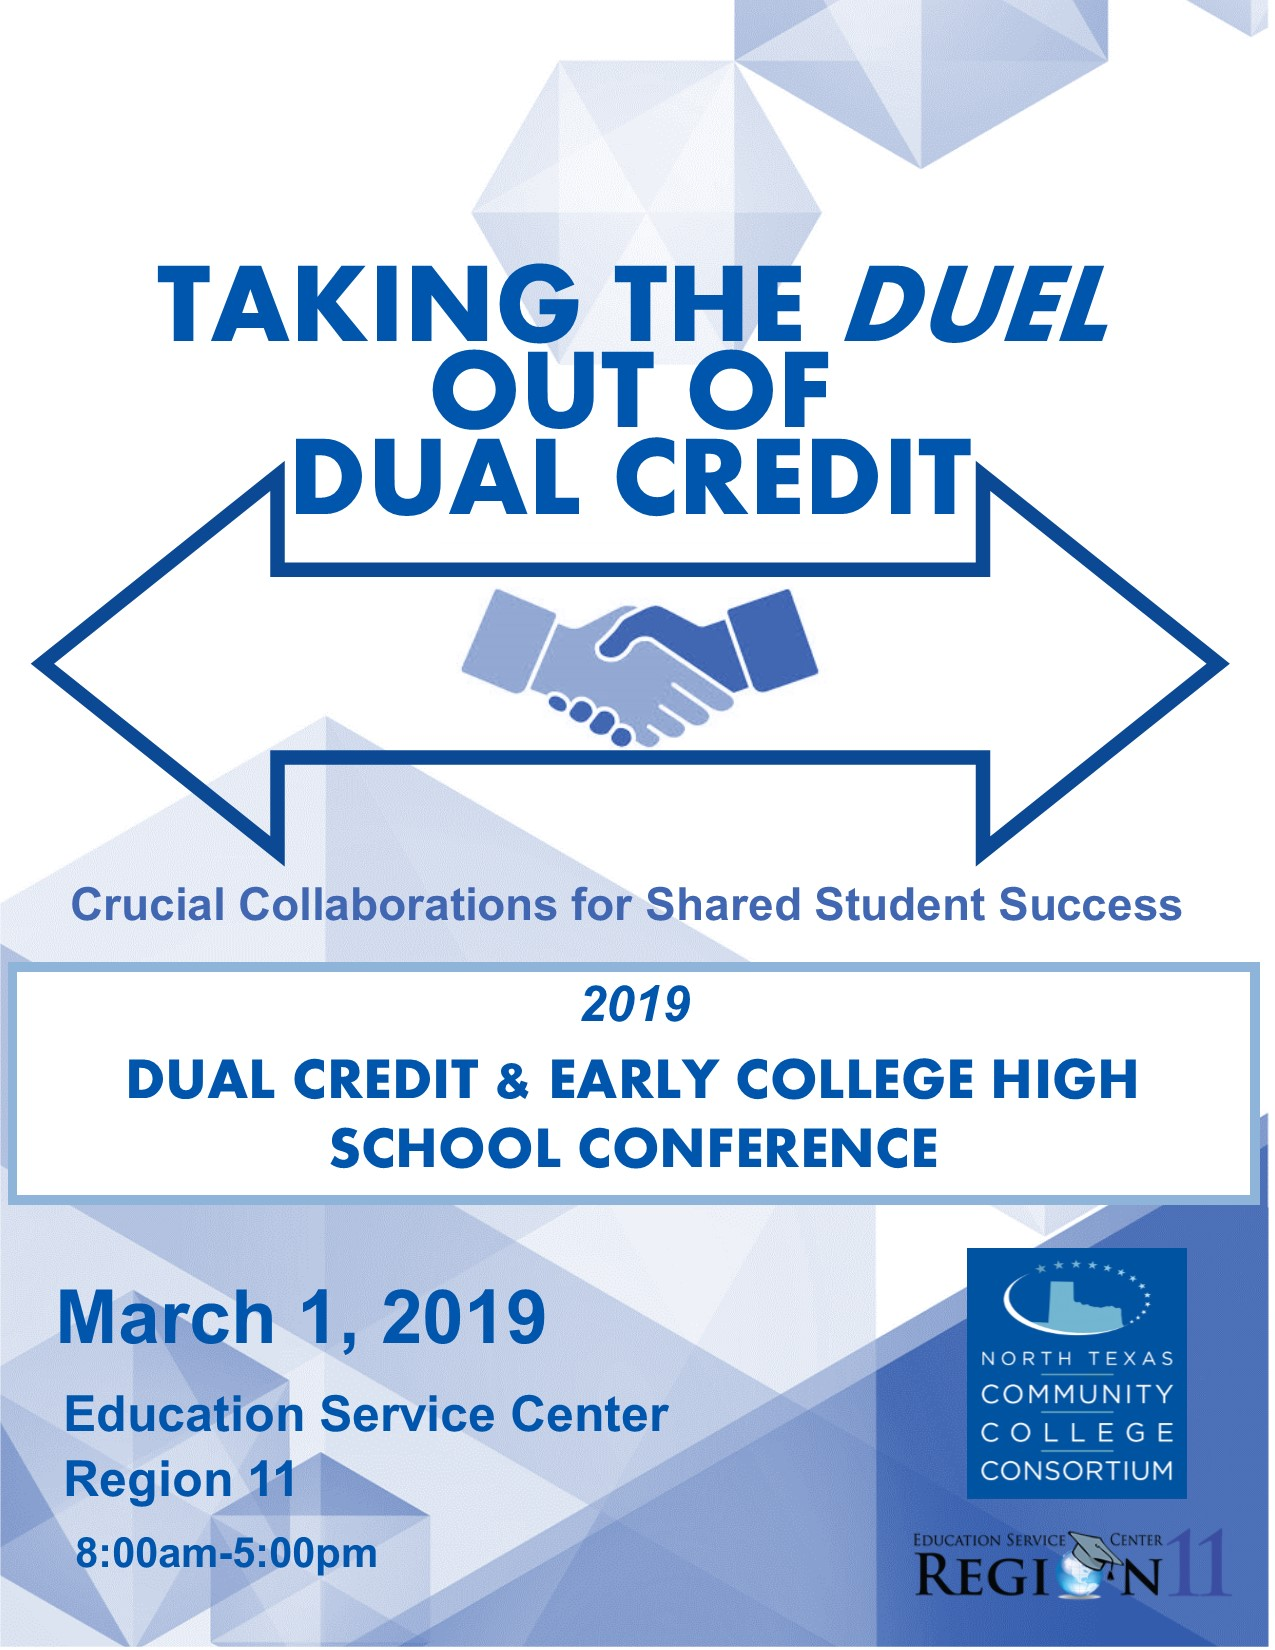 ECHS Dual Credit Conference | North Texas Community College Consortium